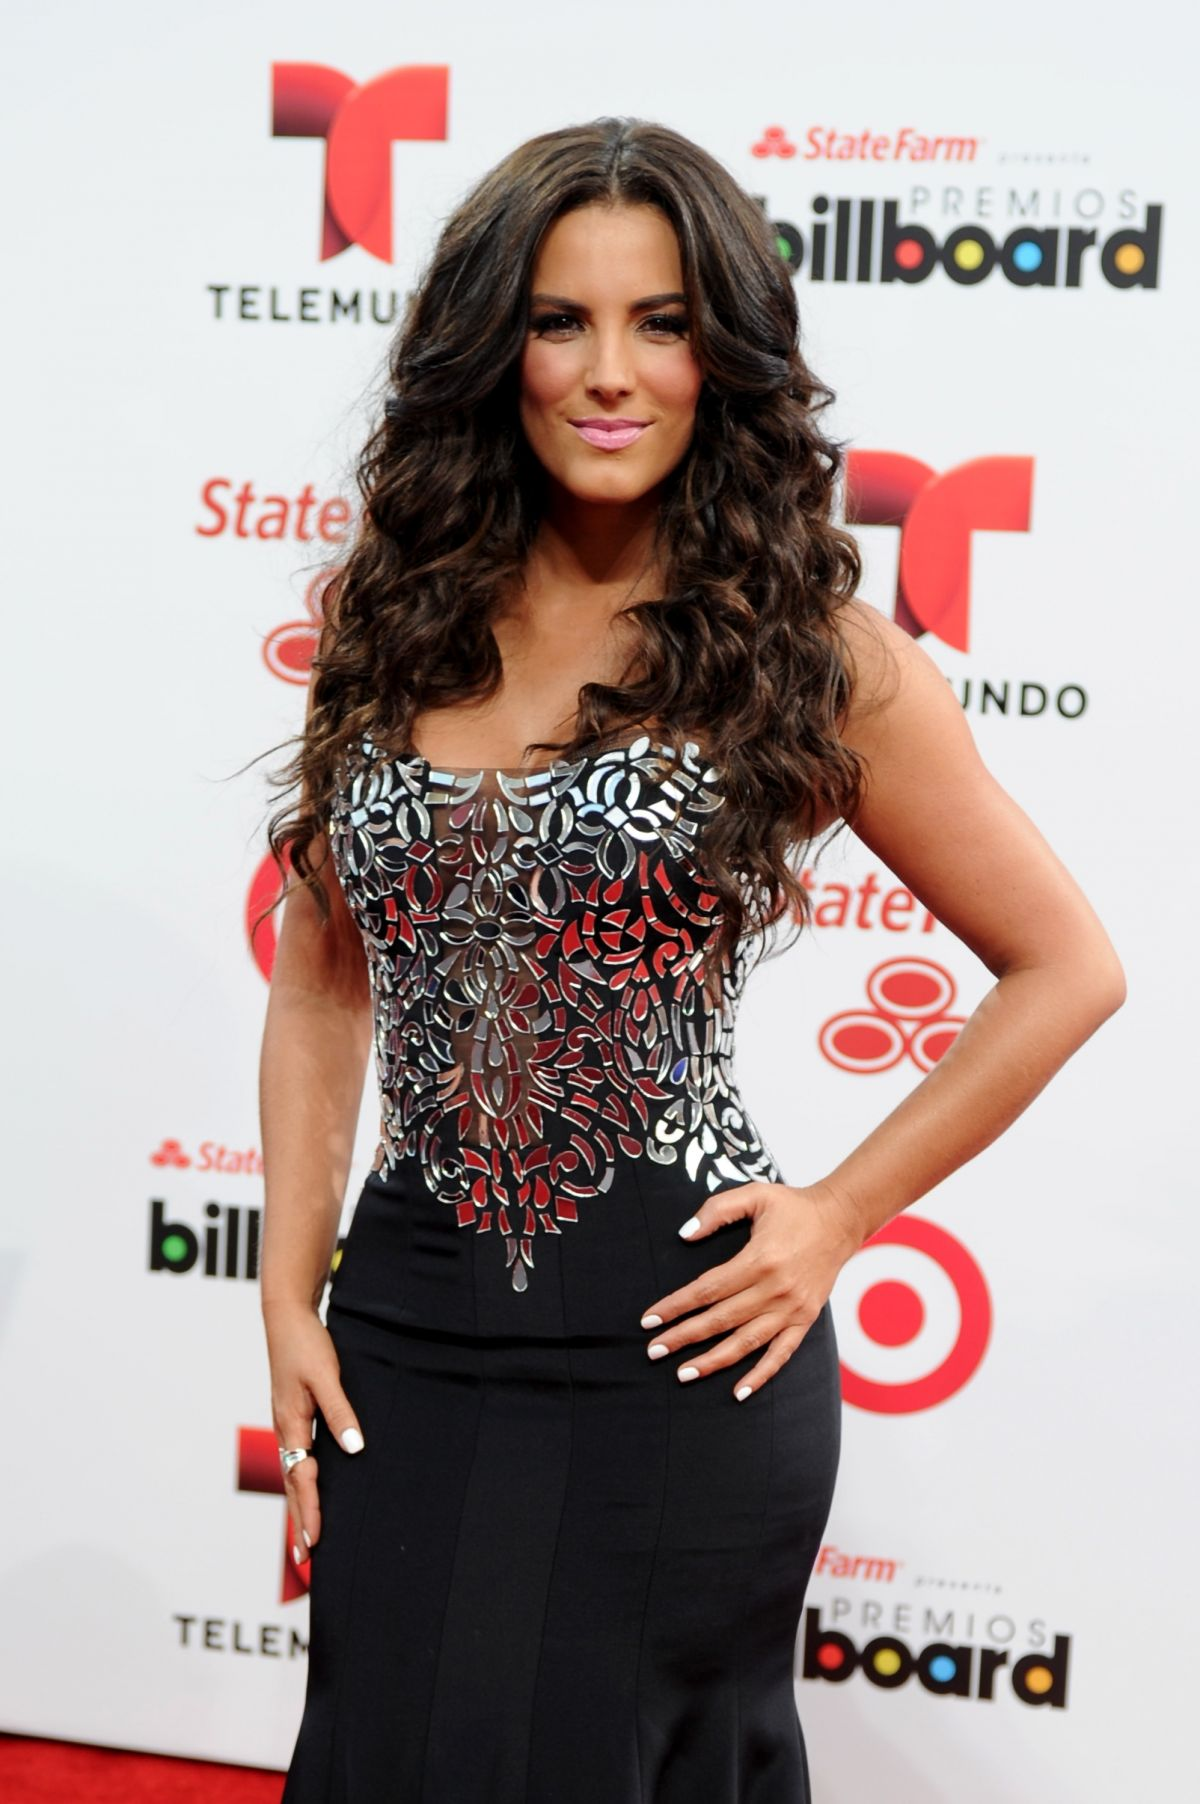 GABY ESPINO at 2014 Billboard Latin Music Awards in Miami